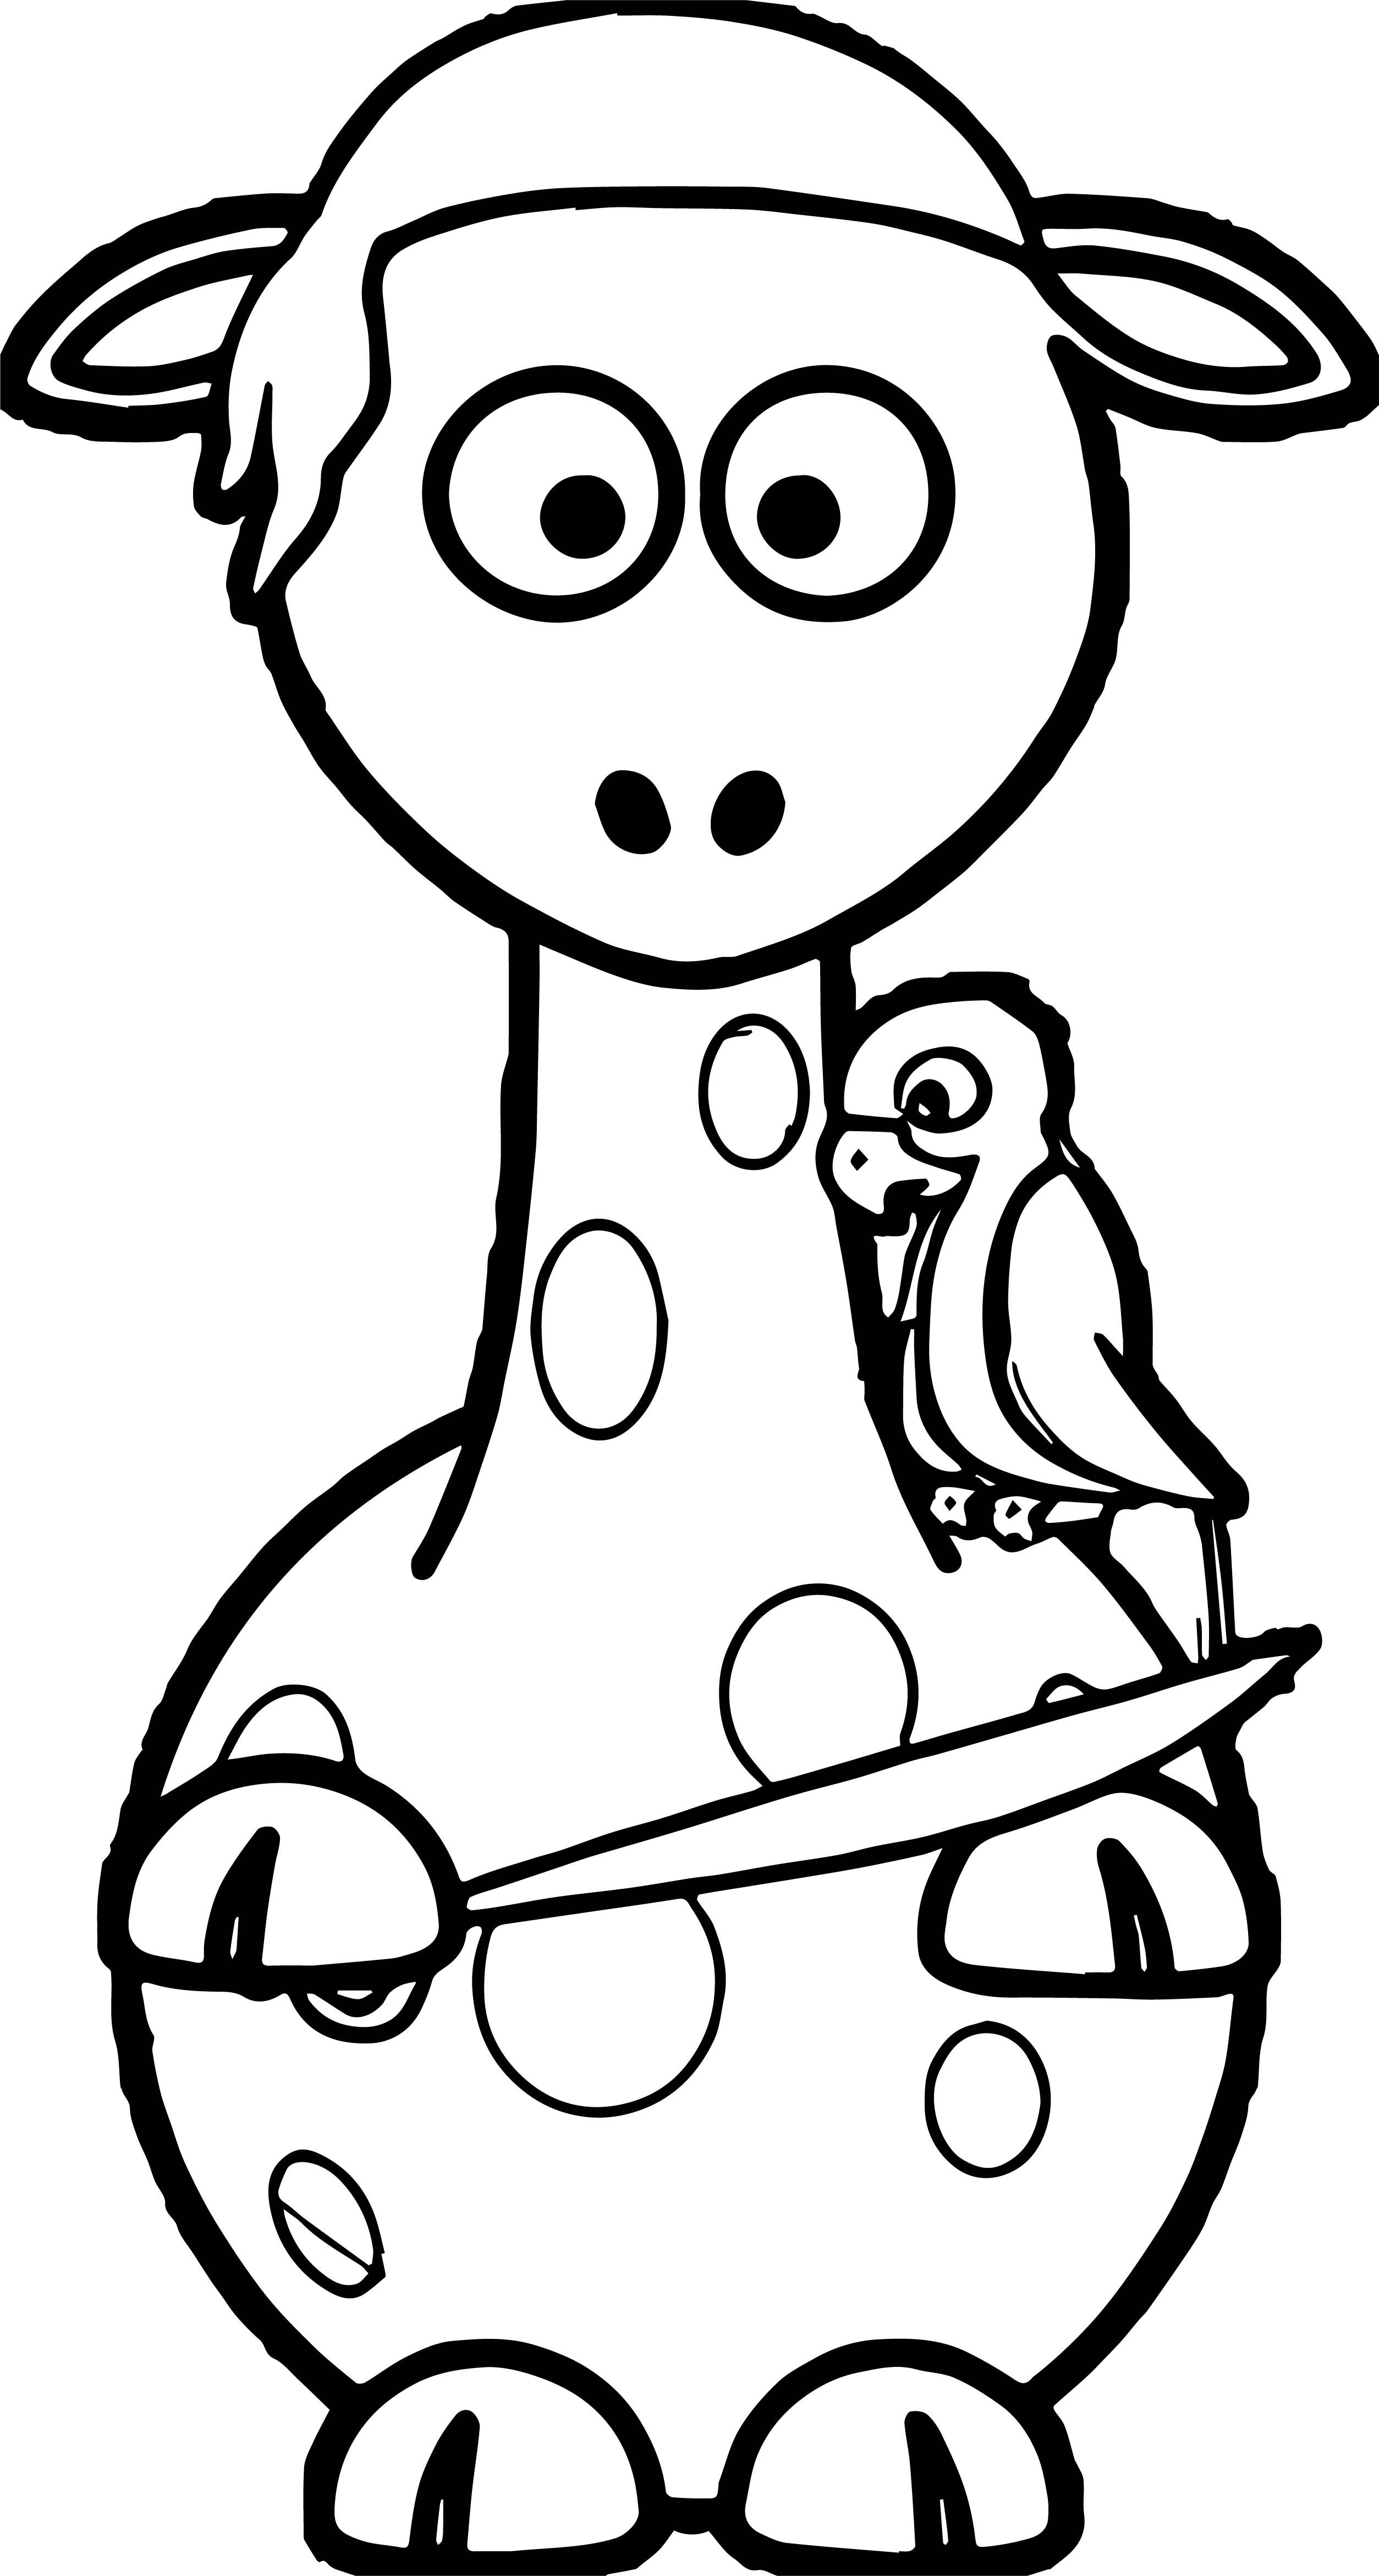 pirate parrot coloring pages cool giraffe pirate and parrot coloring page giraffe coloring pirate pages parrot